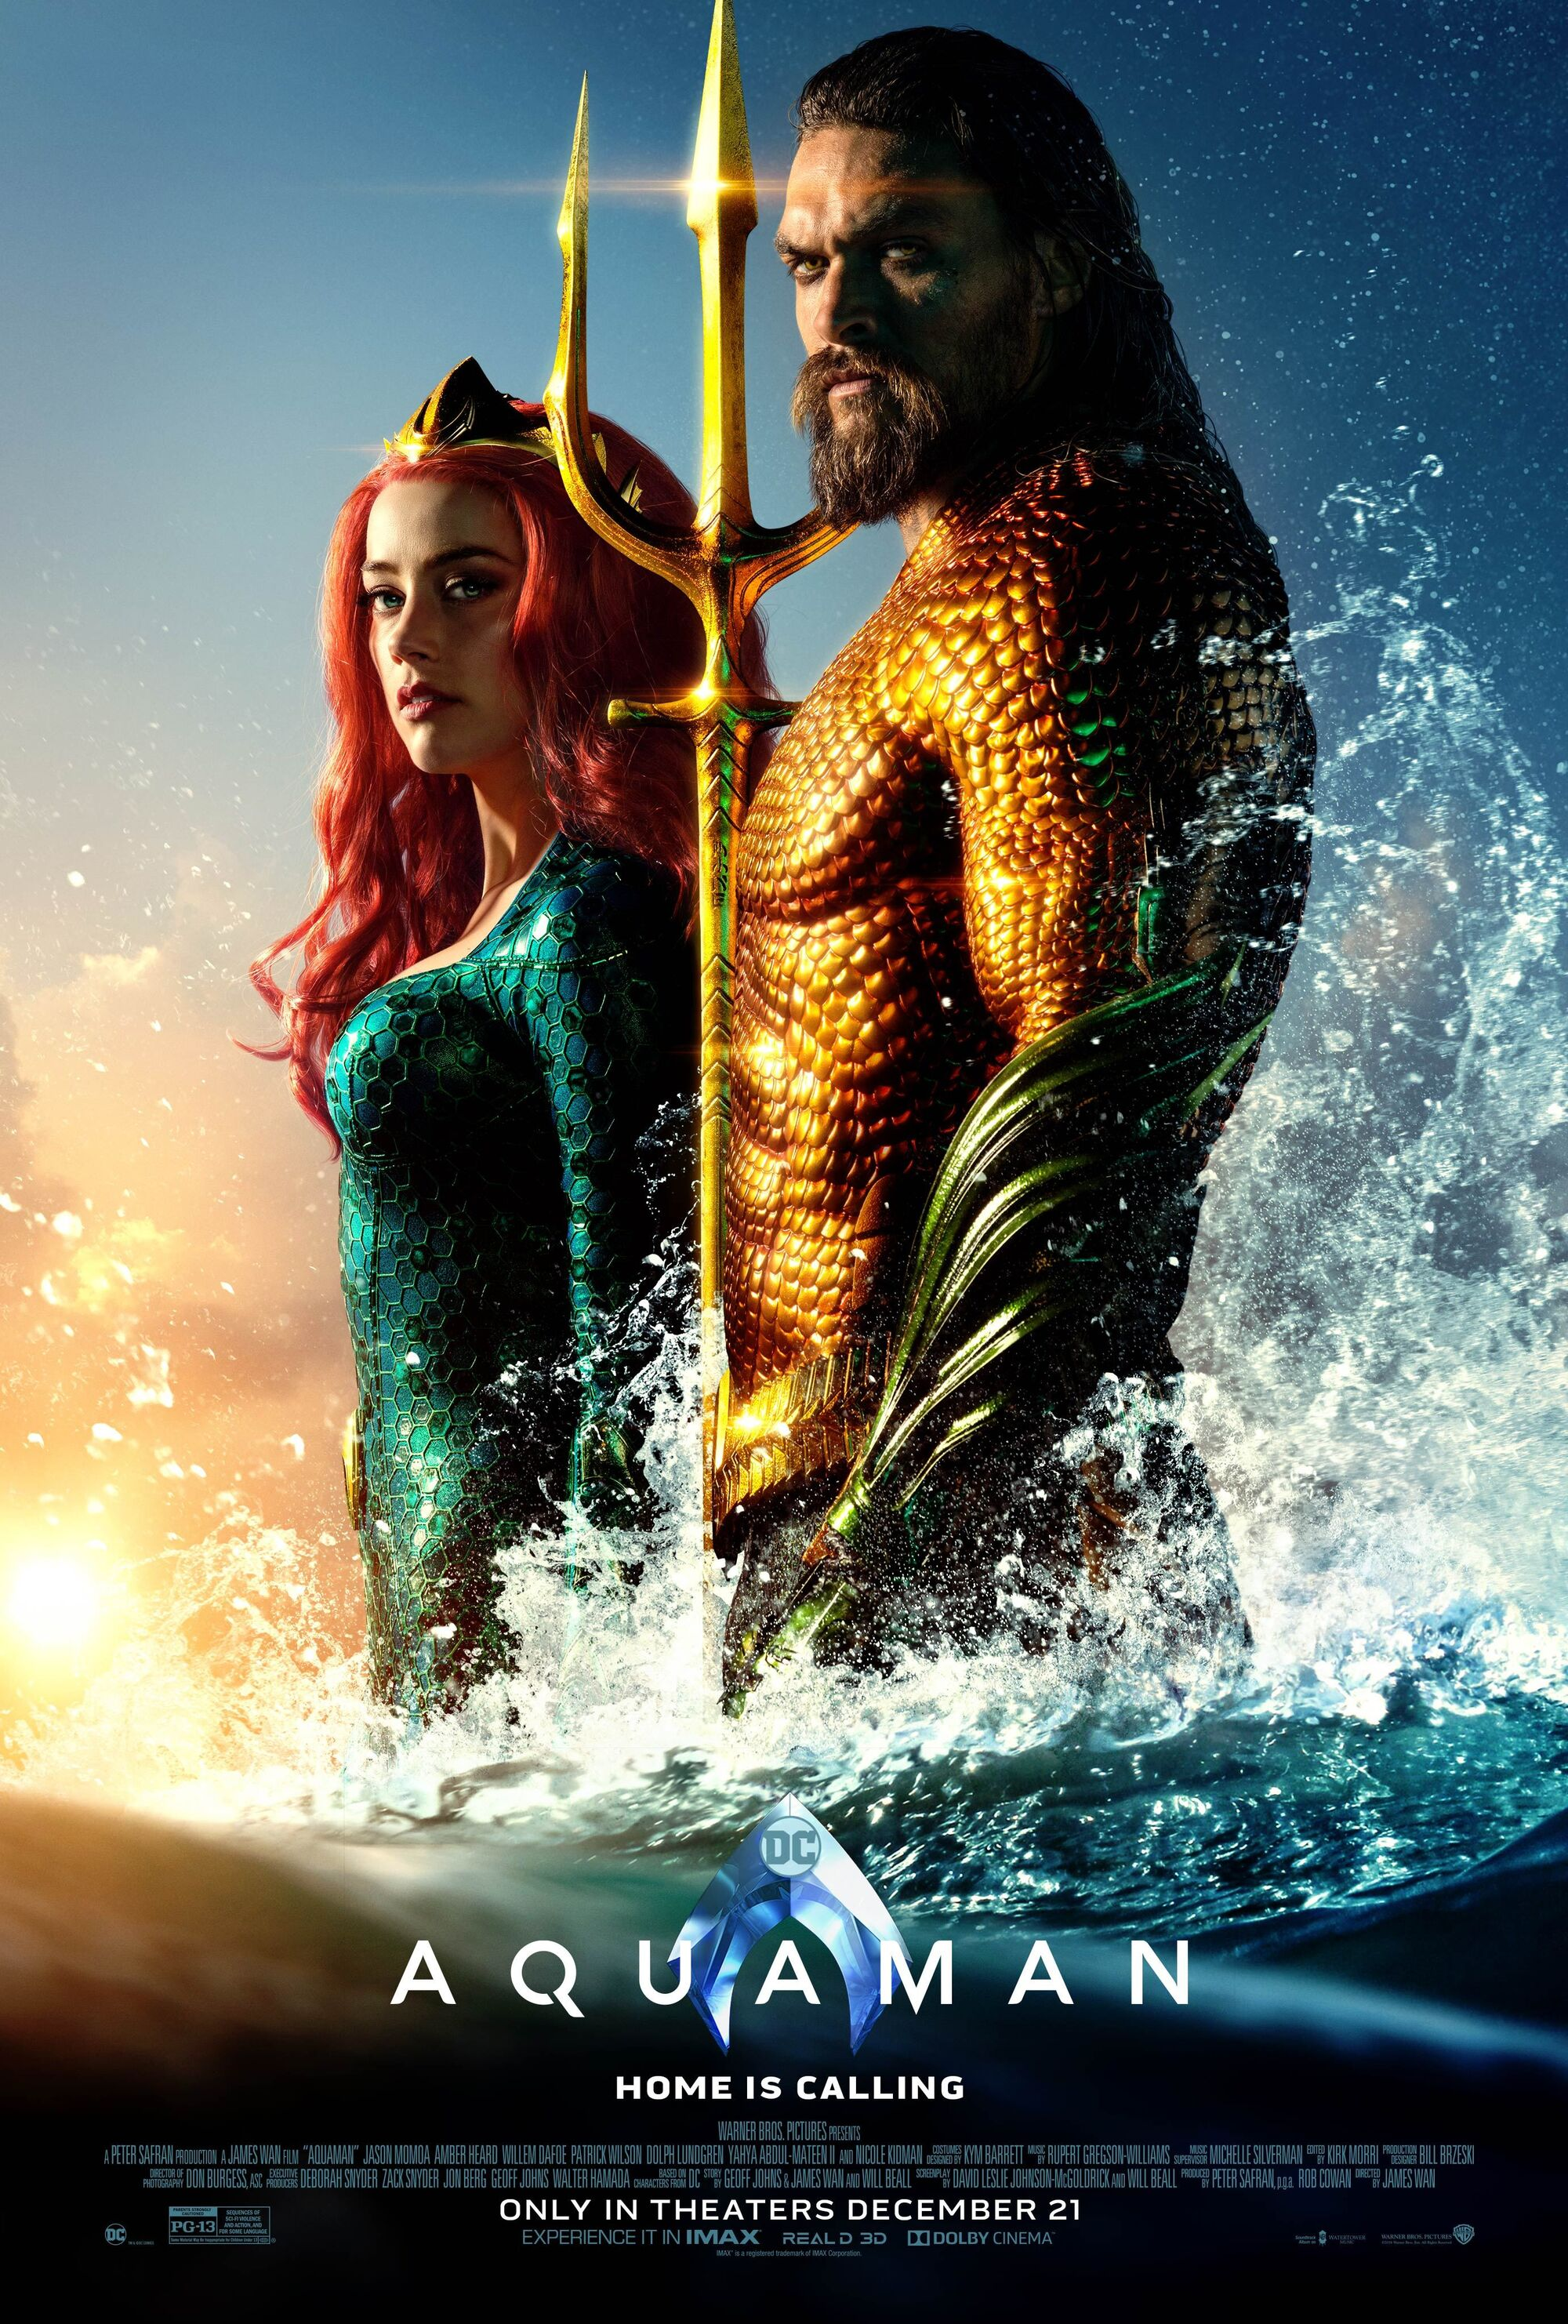 Aquaman (film) | DC Extended Universe Wiki | FANDOM powered